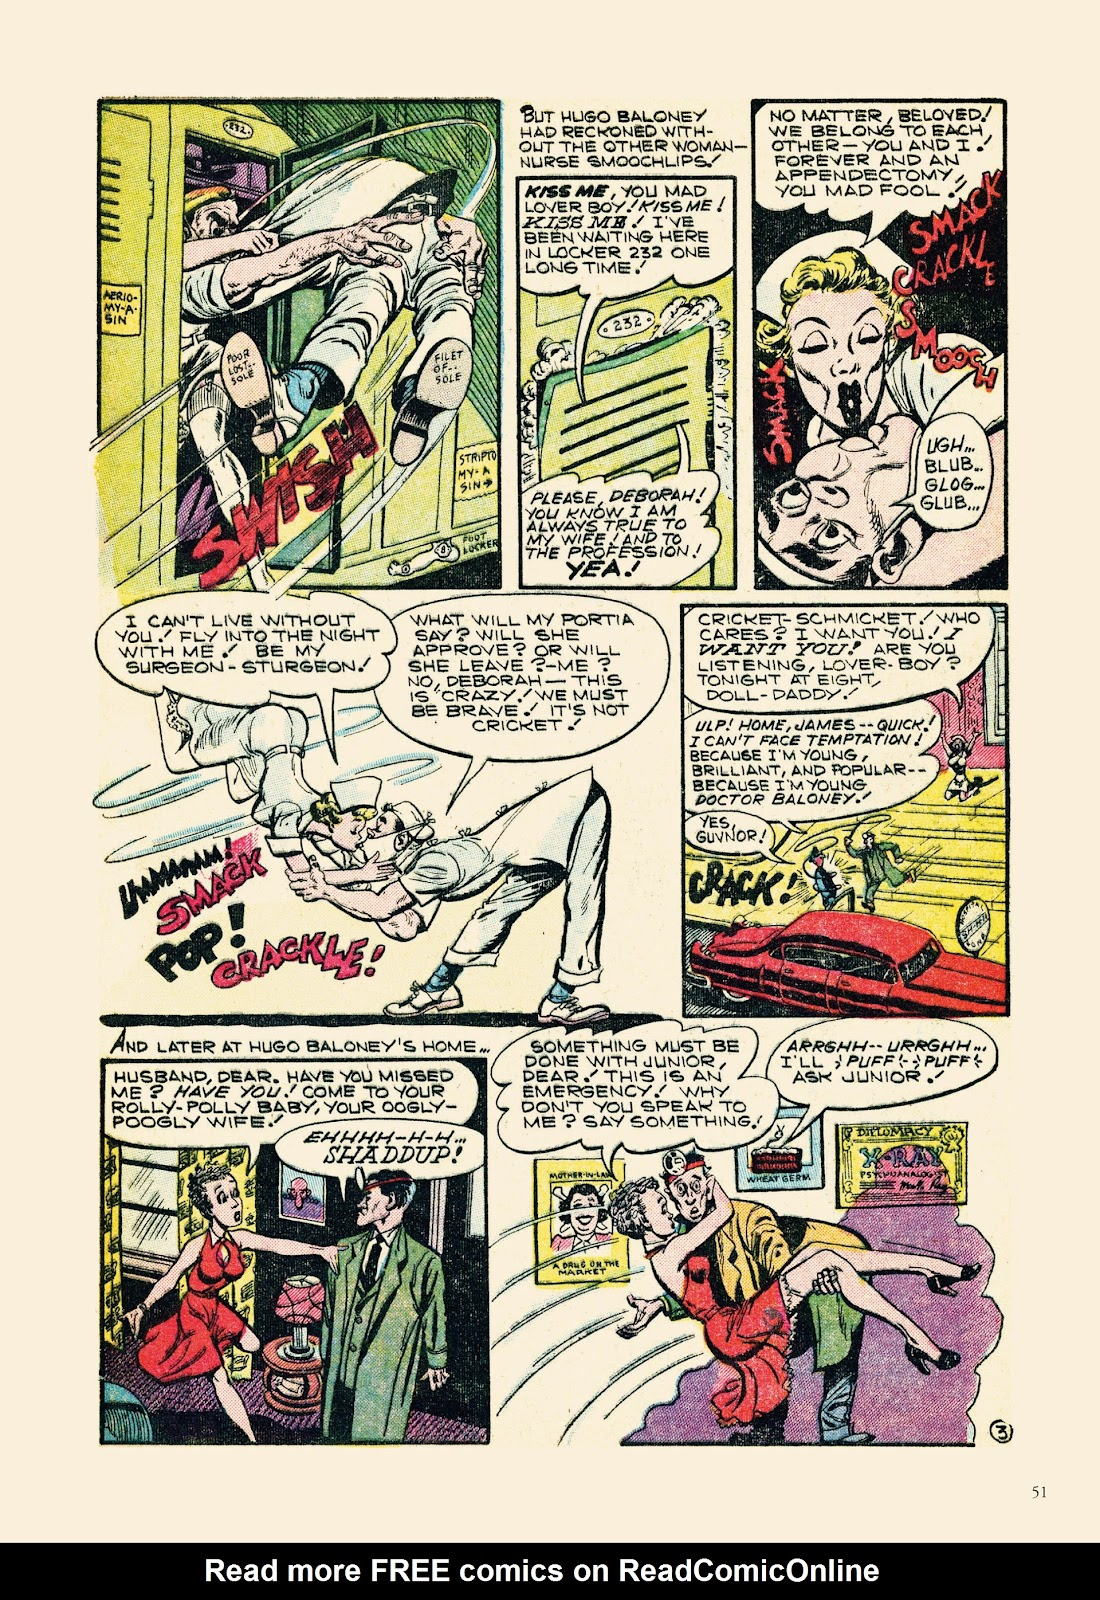 Read online Sincerest Form of Parody: The Best 1950s MAD-Inspired Satirical Comics comic -  Issue # TPB (Part 1) - 52